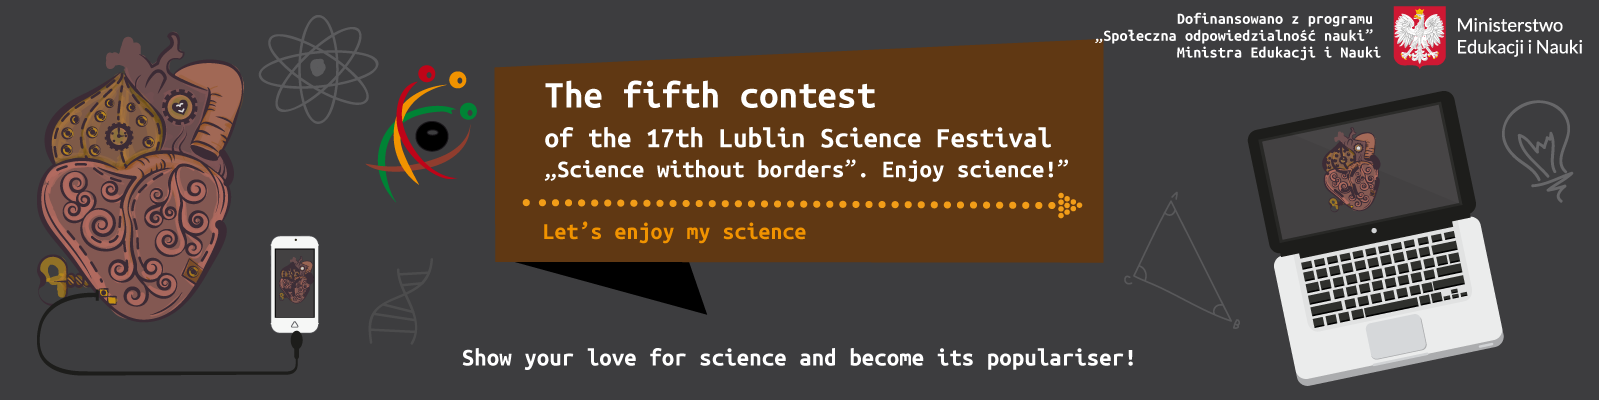 Applications for the competition are open from to 18.07.